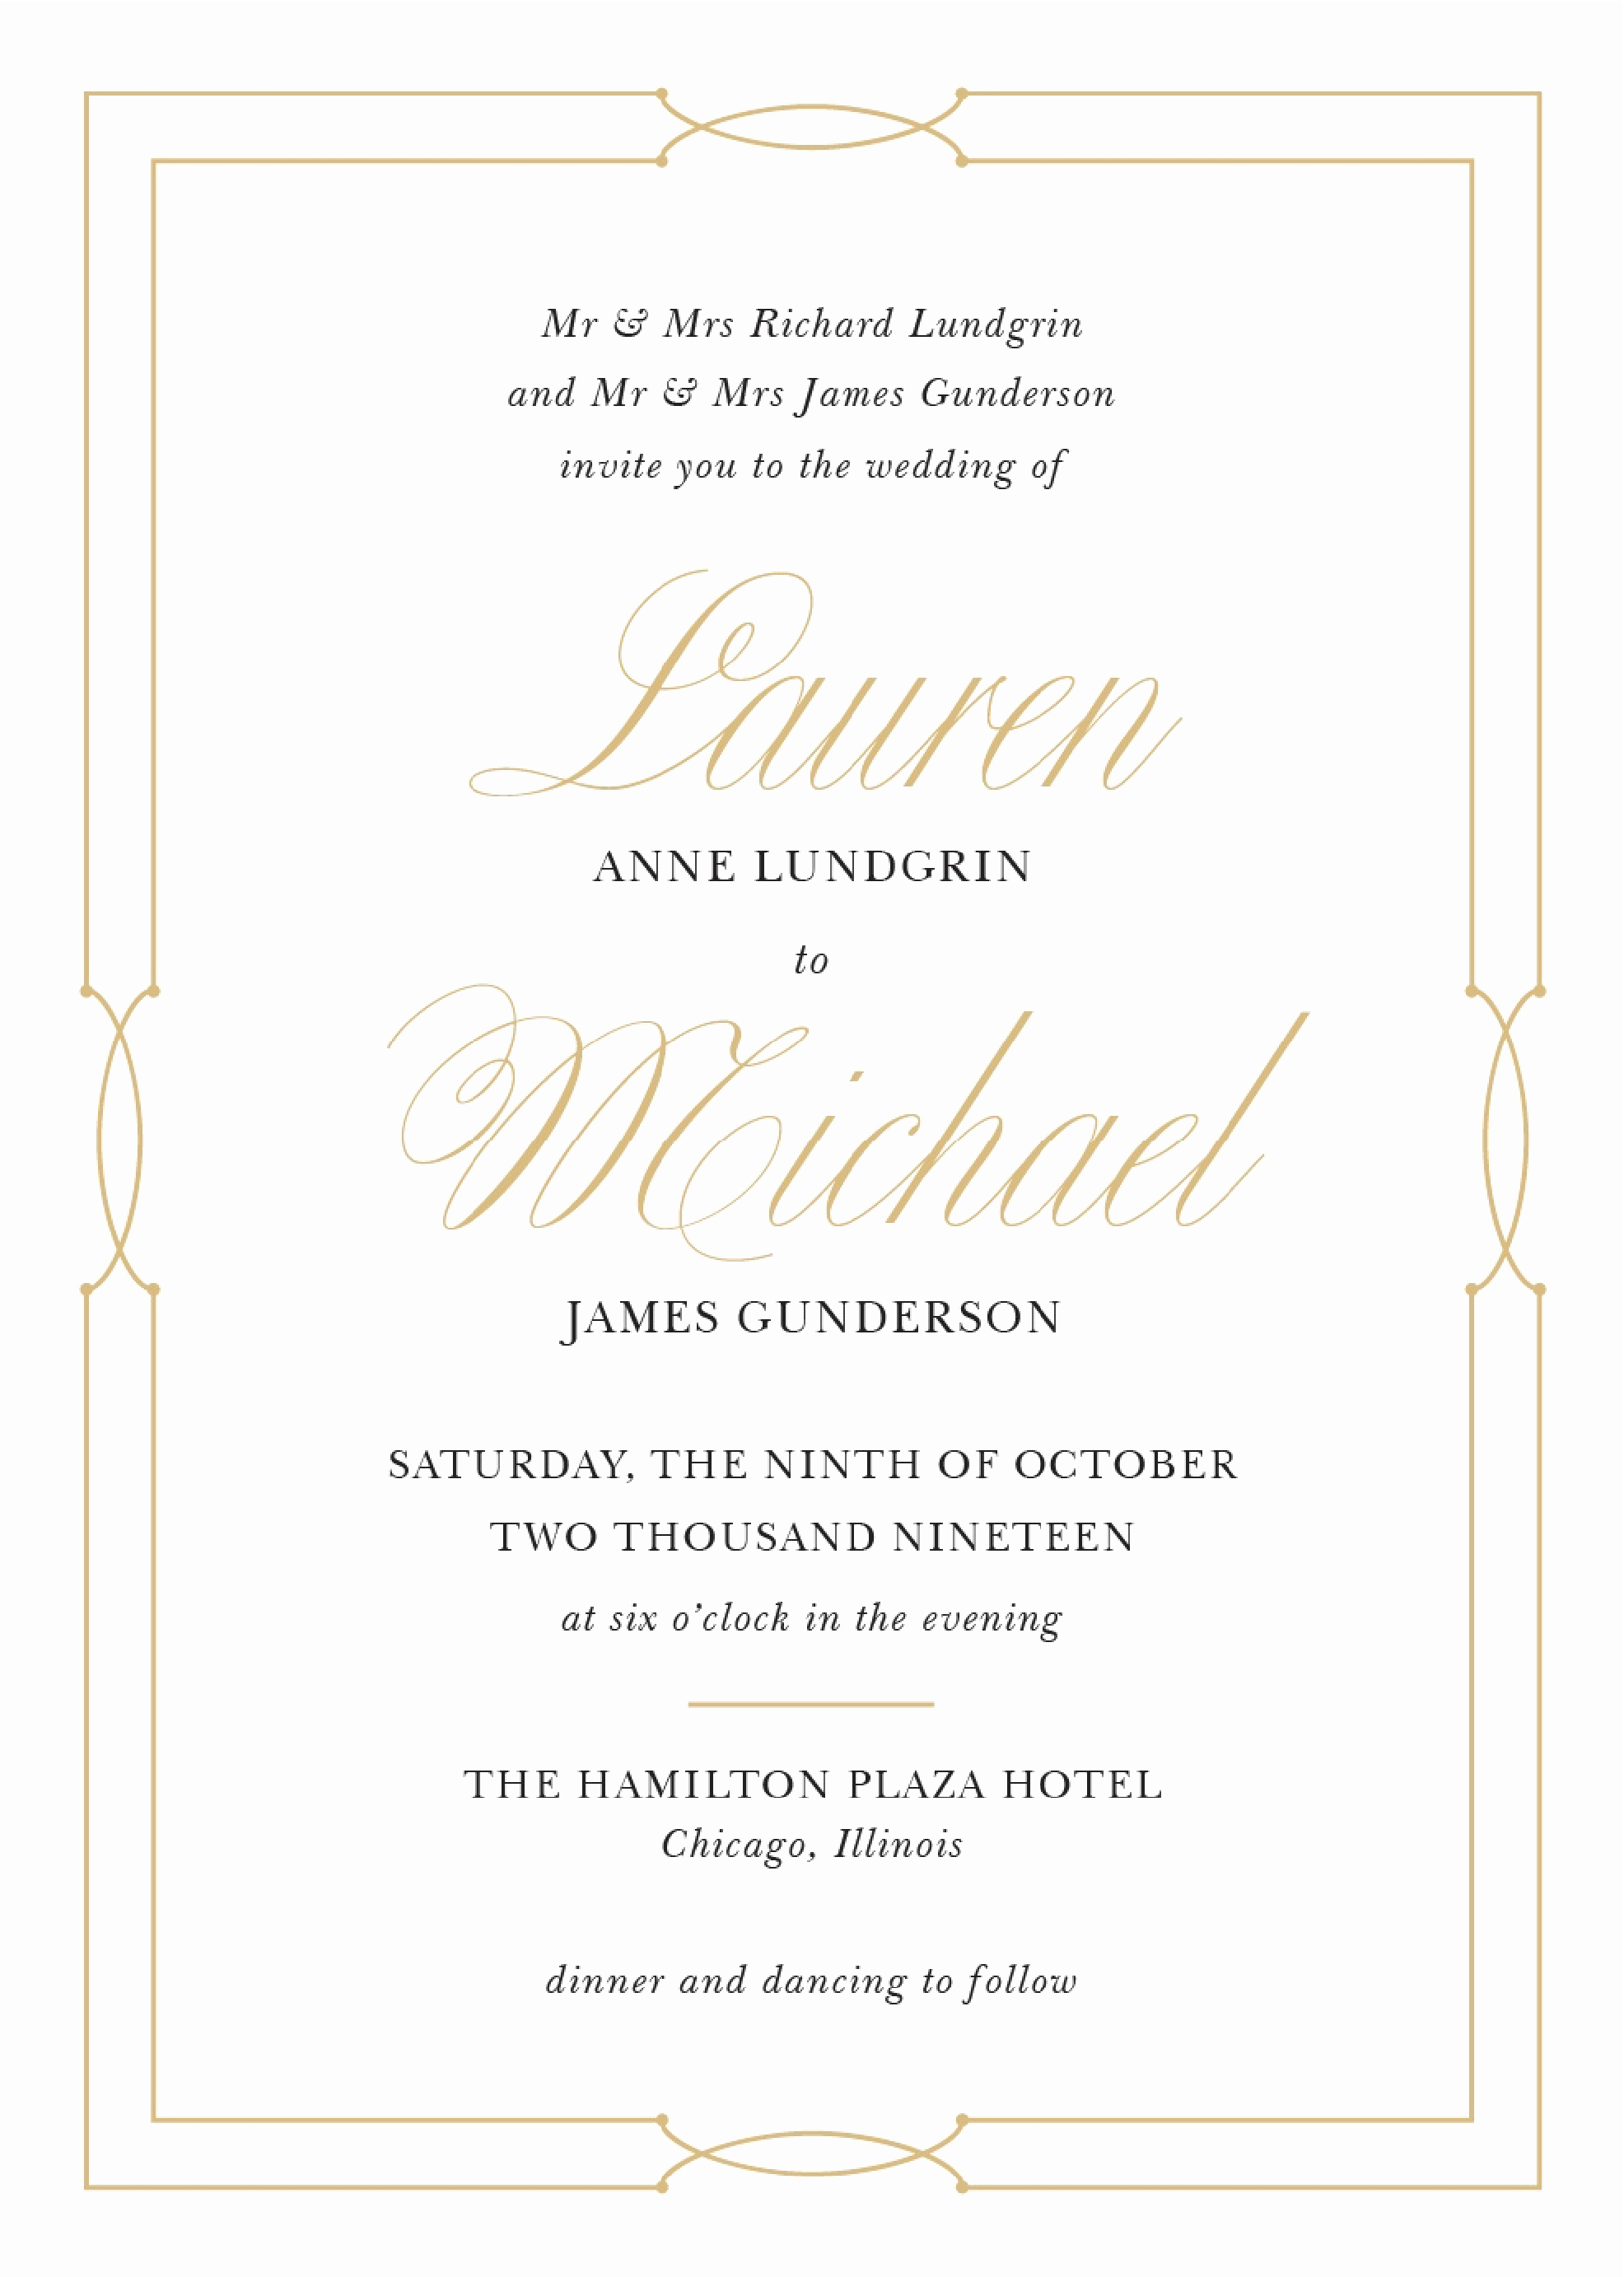 Sample Of Weeding Invitation Fresh Wedding Invitation Wording Samples